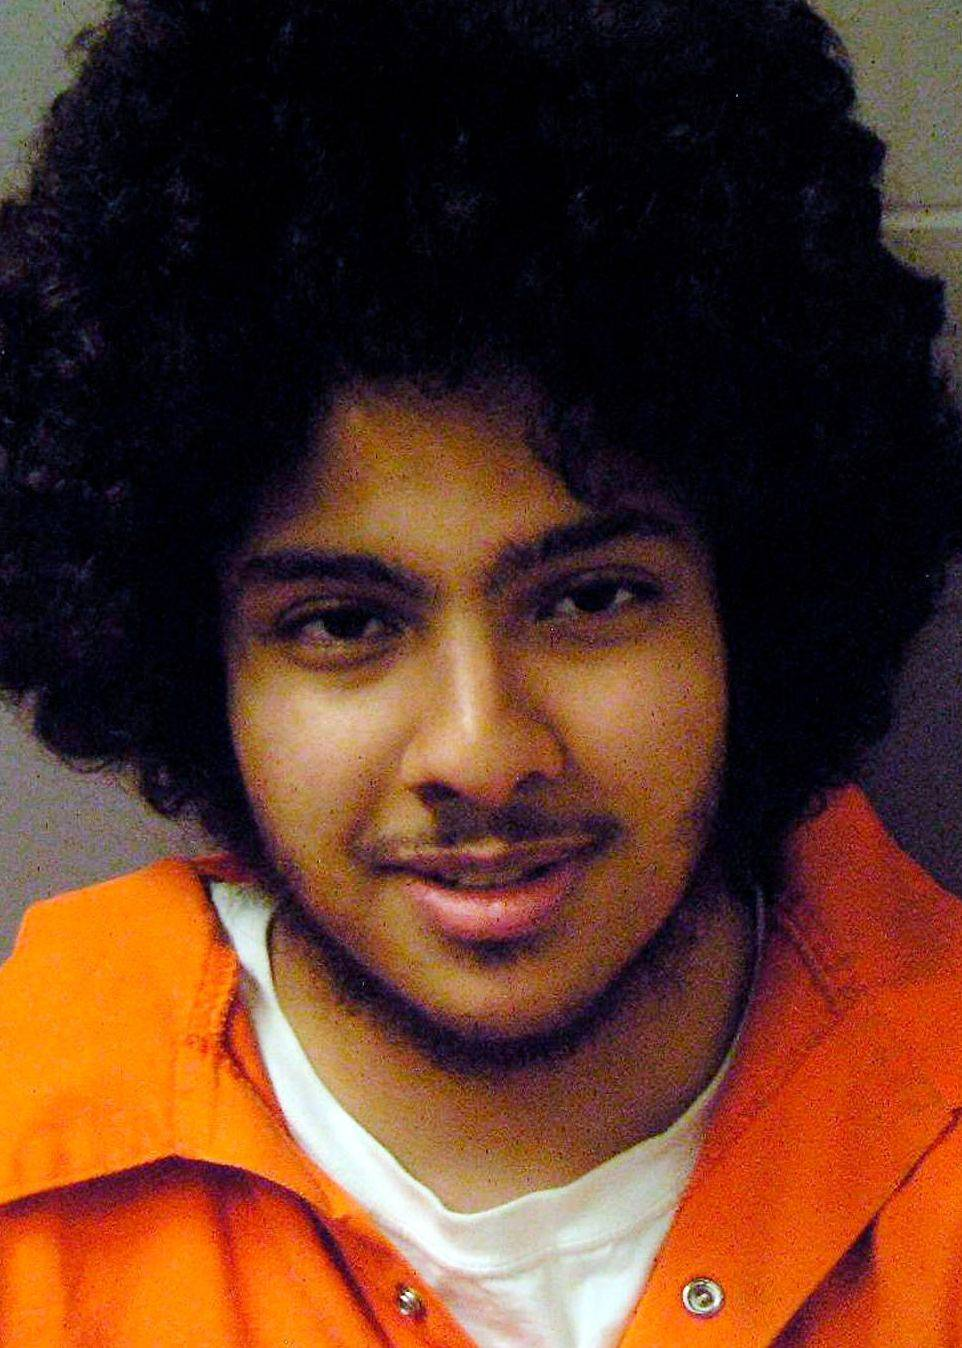 Adel Daoud, of Hillside, is charged with terrorism for allegedly trying to set off what he thought was a car bomb Sept. 14, 2012, near a downtown Chicago bar. A federal judge in the case has undone a key ruling saying the government needn't divulge whether its investigation relied on expanded phone and Internet surveillance programs.